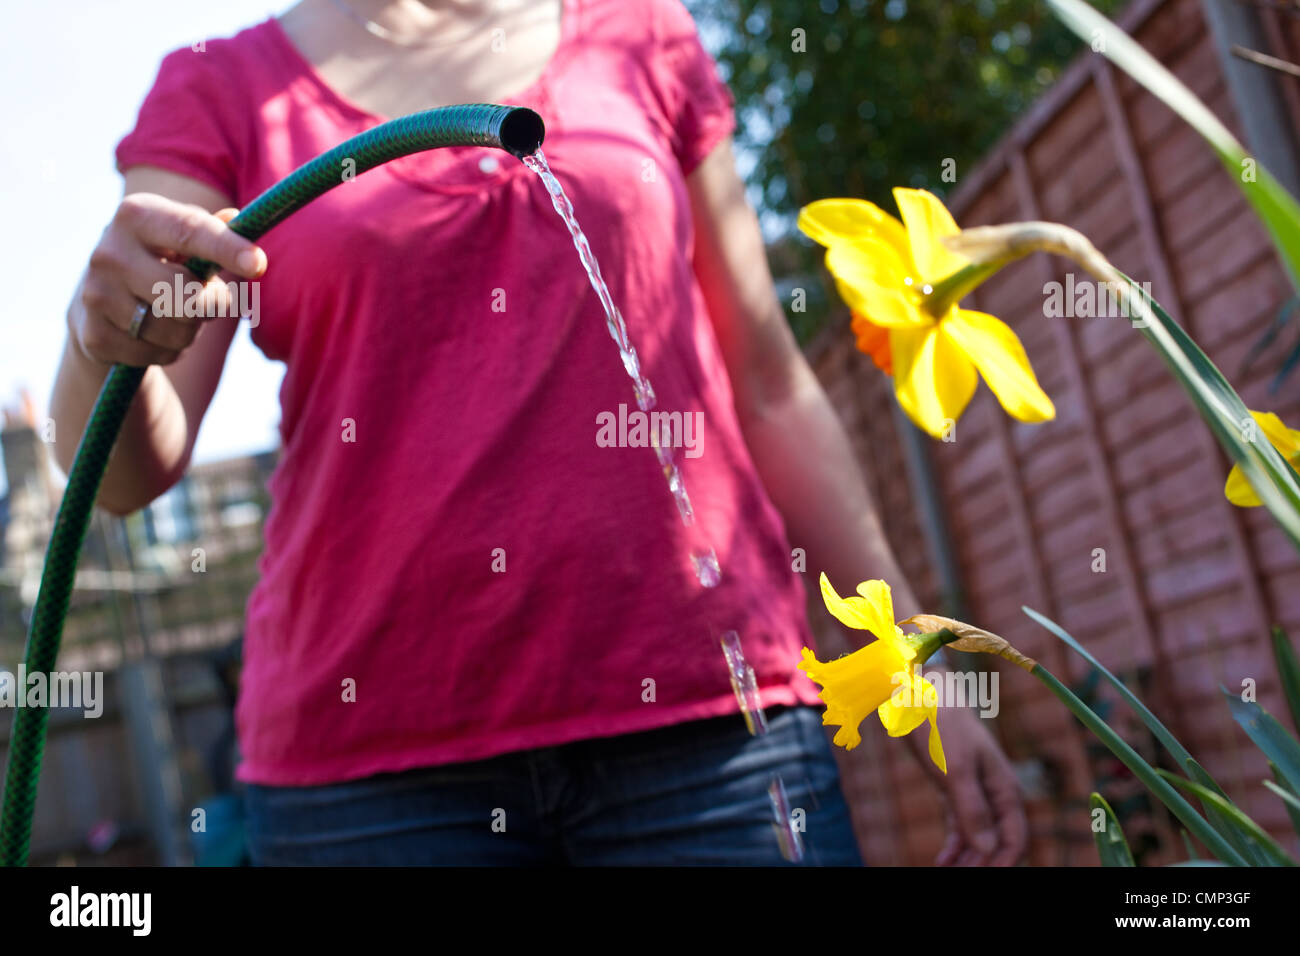 Woman watering flowers in back garden ahead of the national hosepipe ban which could be implemented due to dry weather - Stock Image